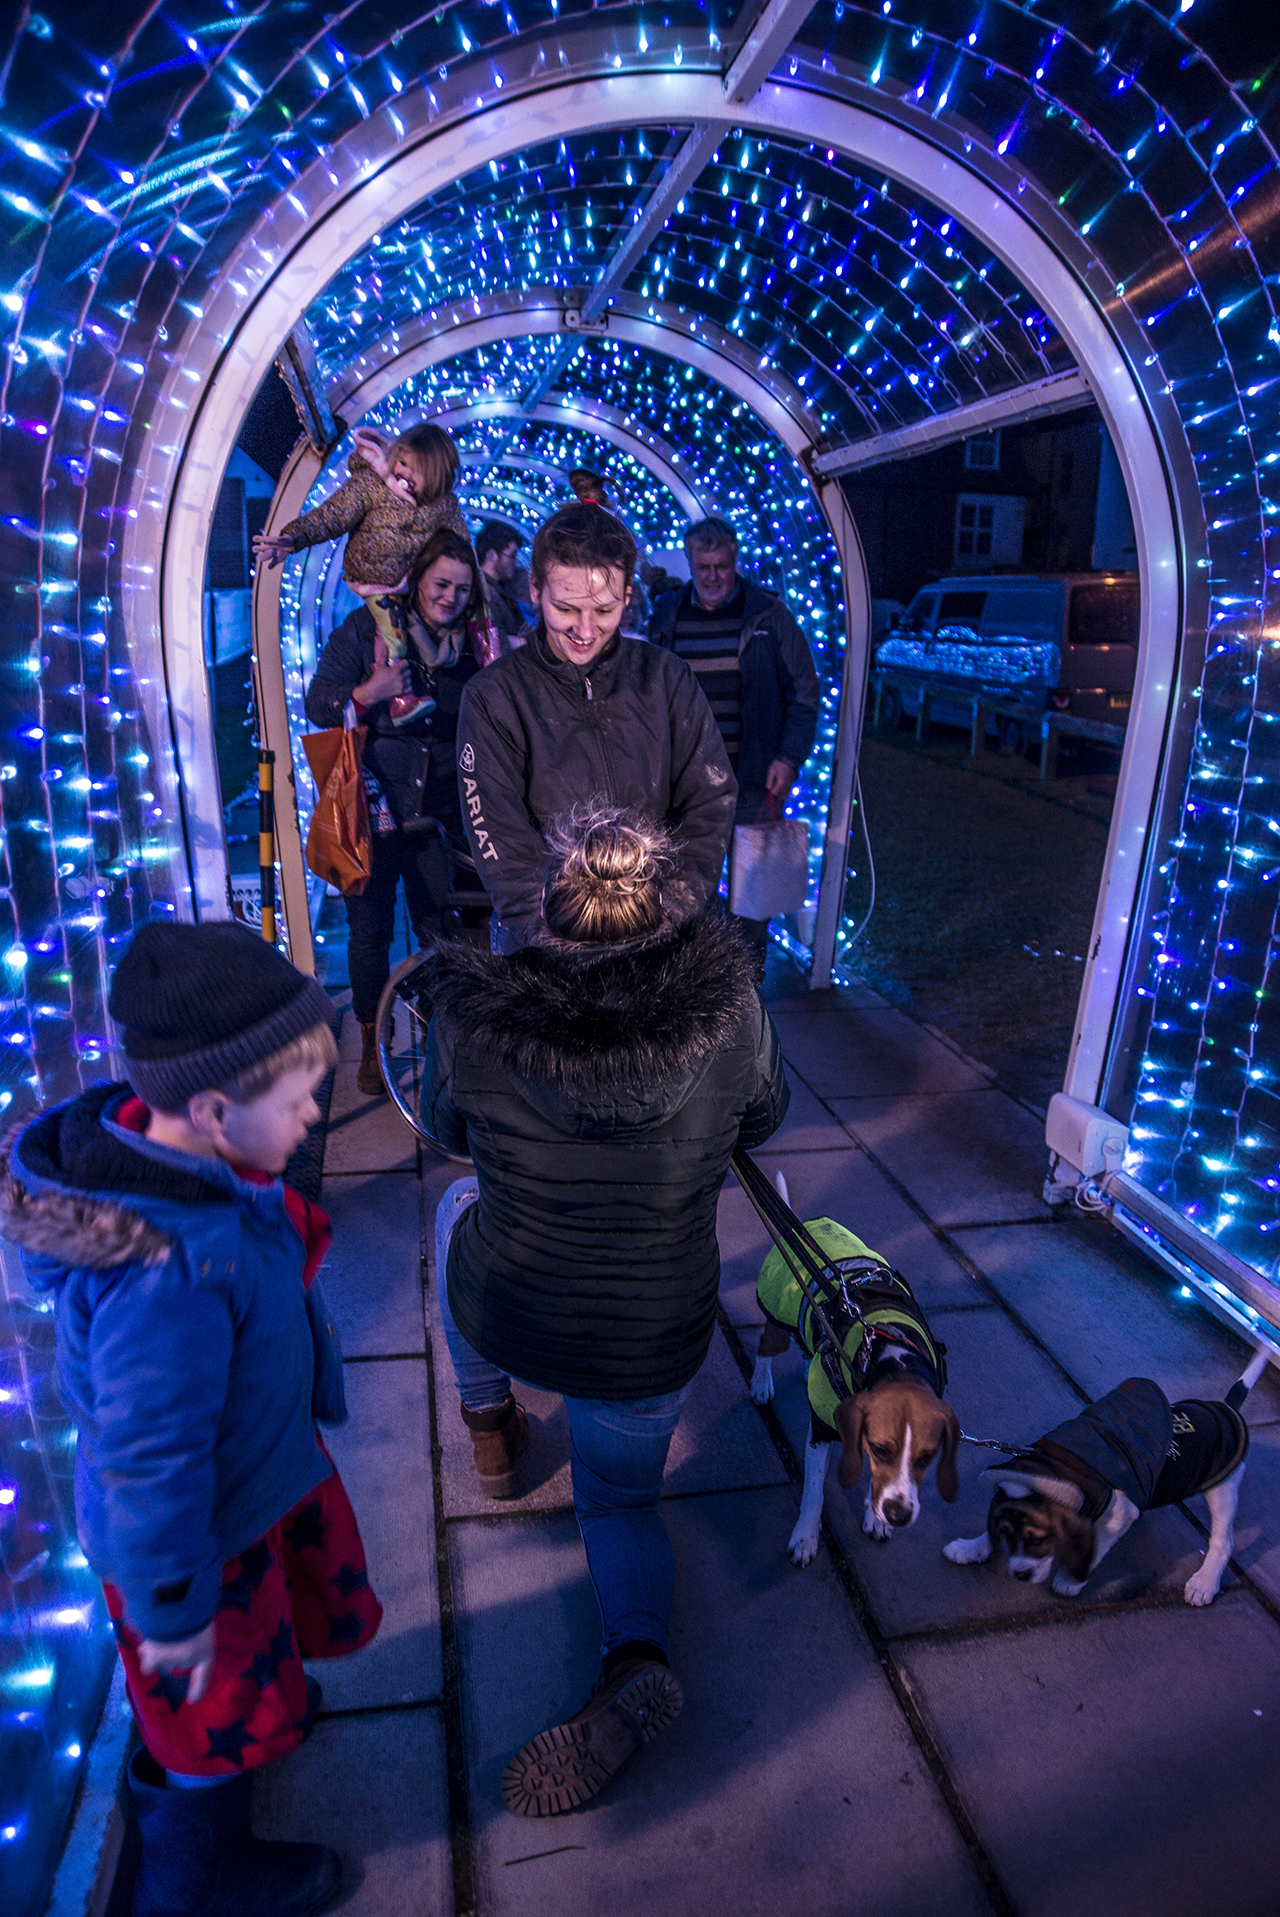 Woman proposes to partner in England's now-famous plastic supermarket tunnel